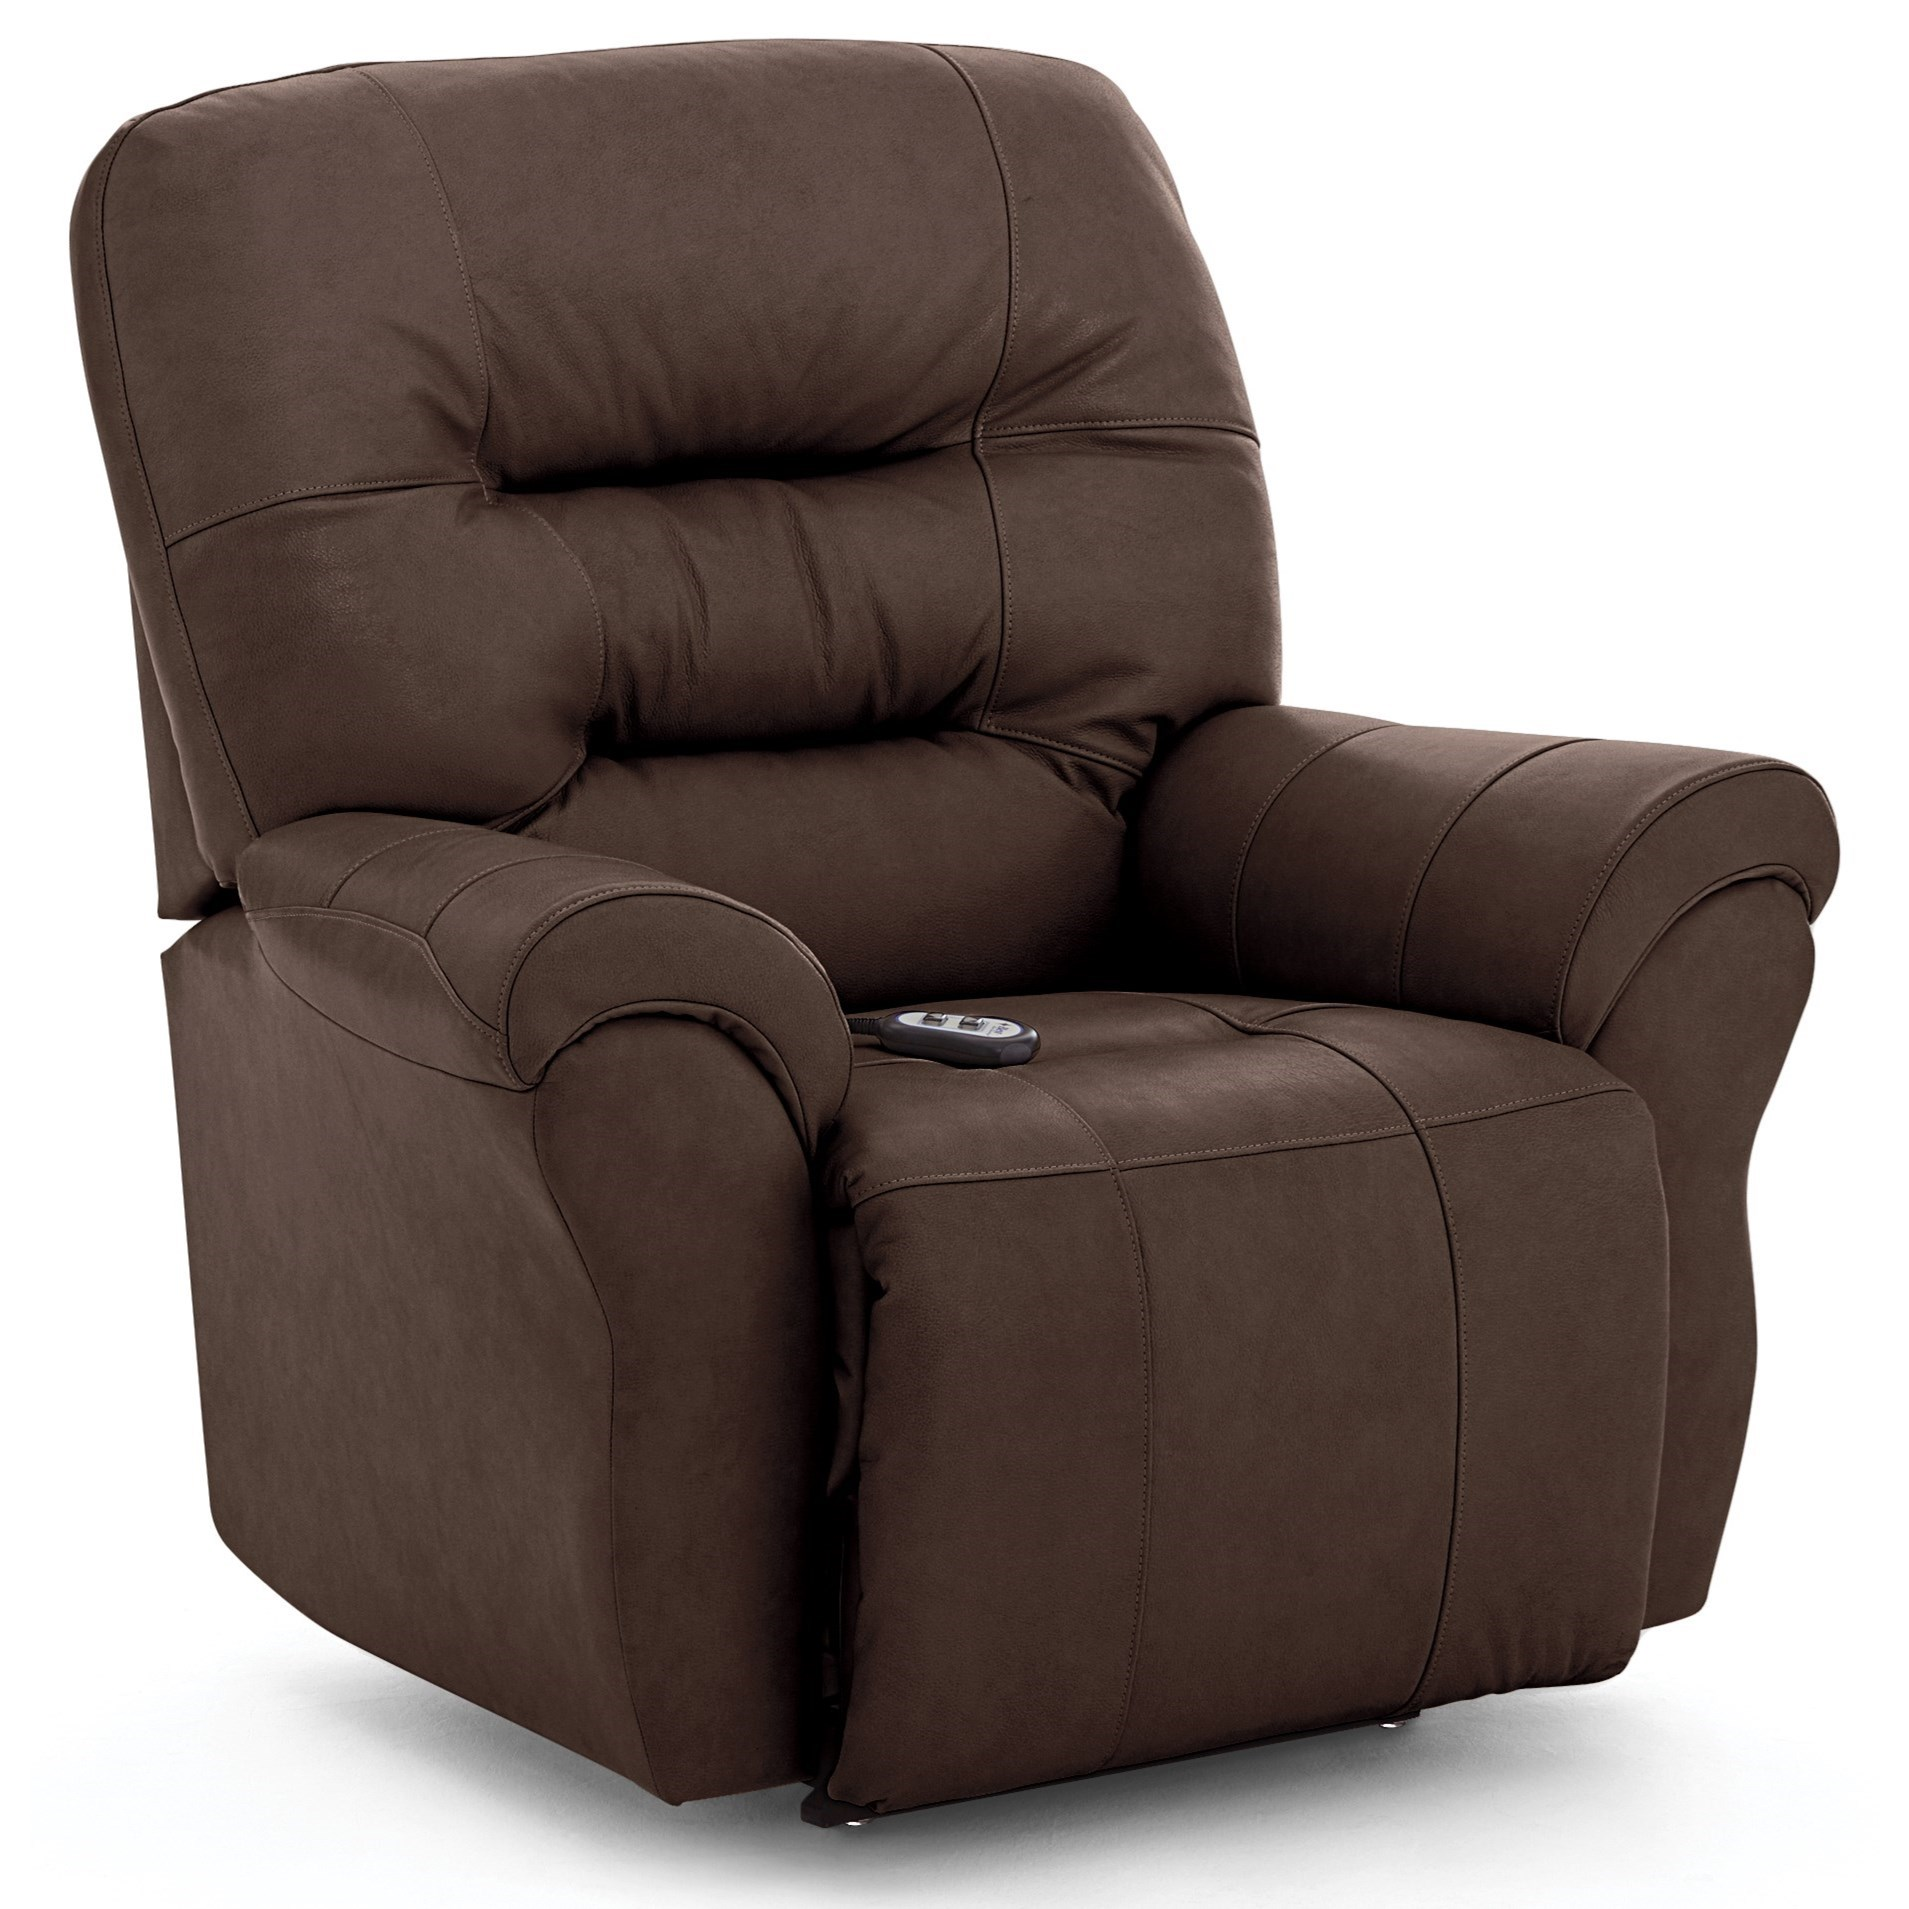 Unity Power Rocker Recliner by Best Home Furnishings at Alison Craig Home Furnishings